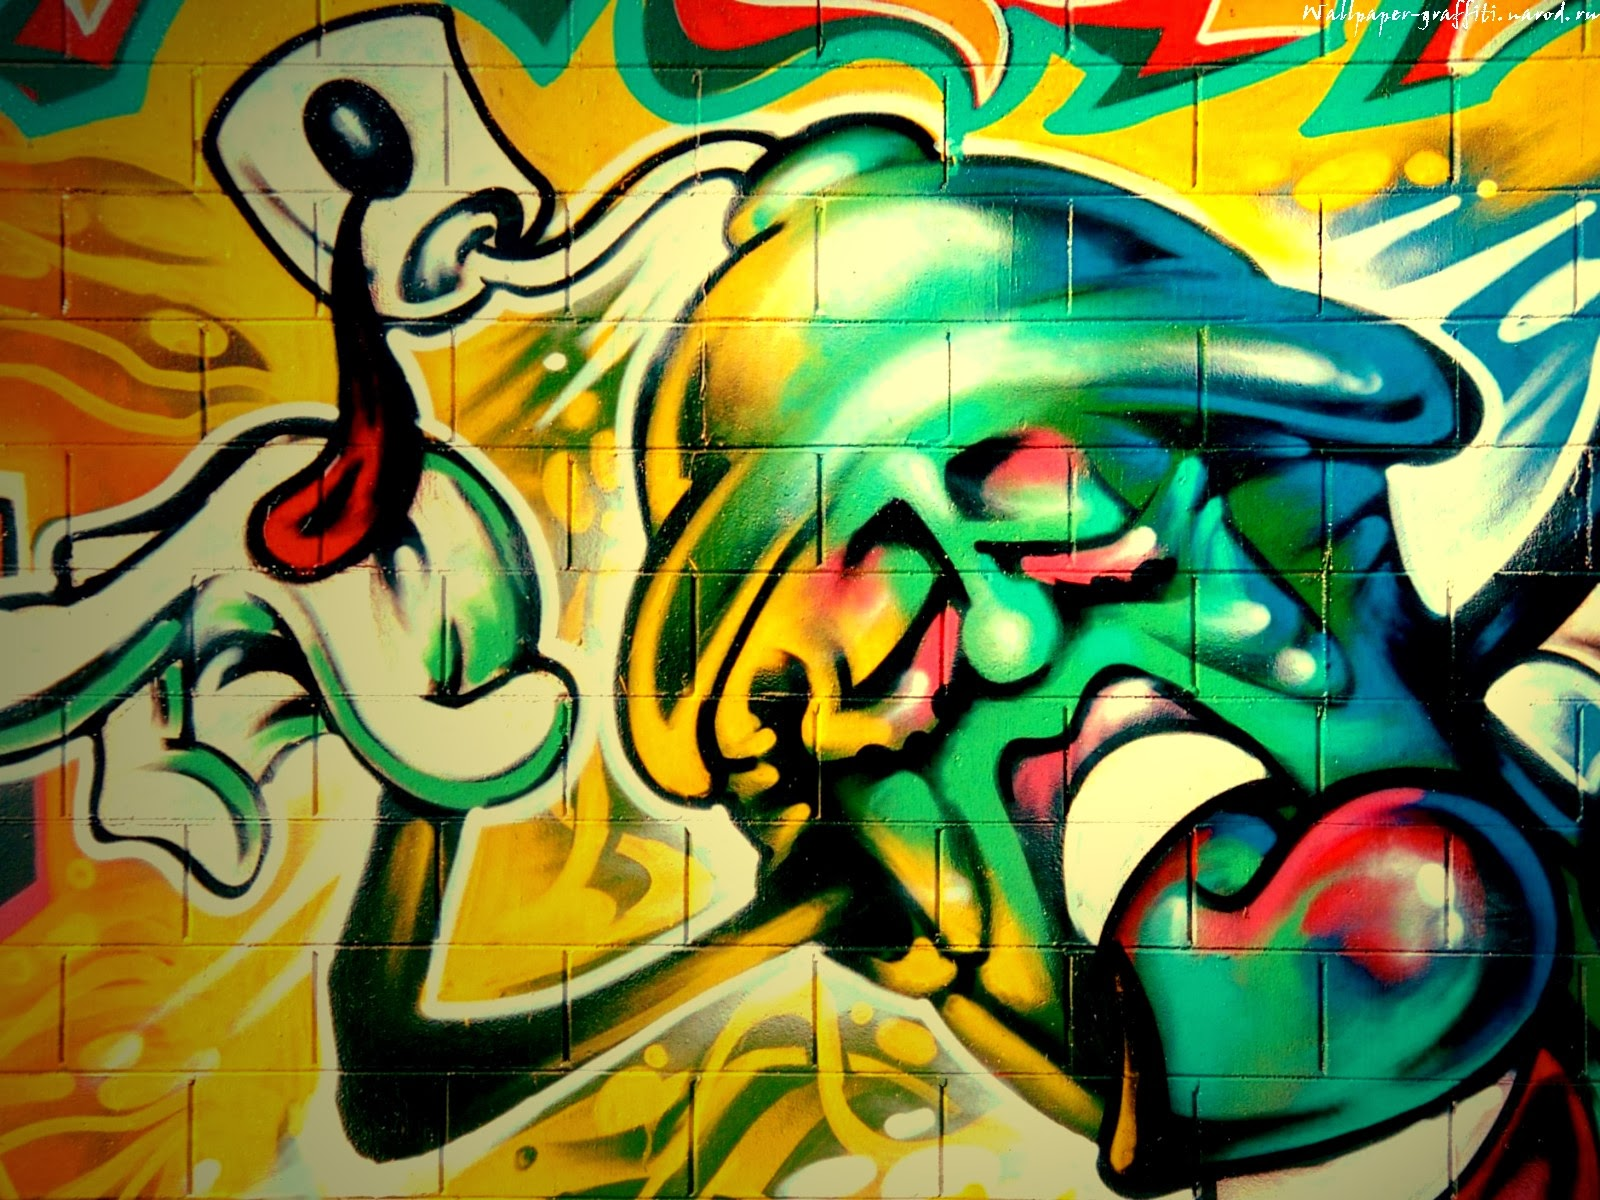 Graffiti wall creator - Graffiti Wallpaper